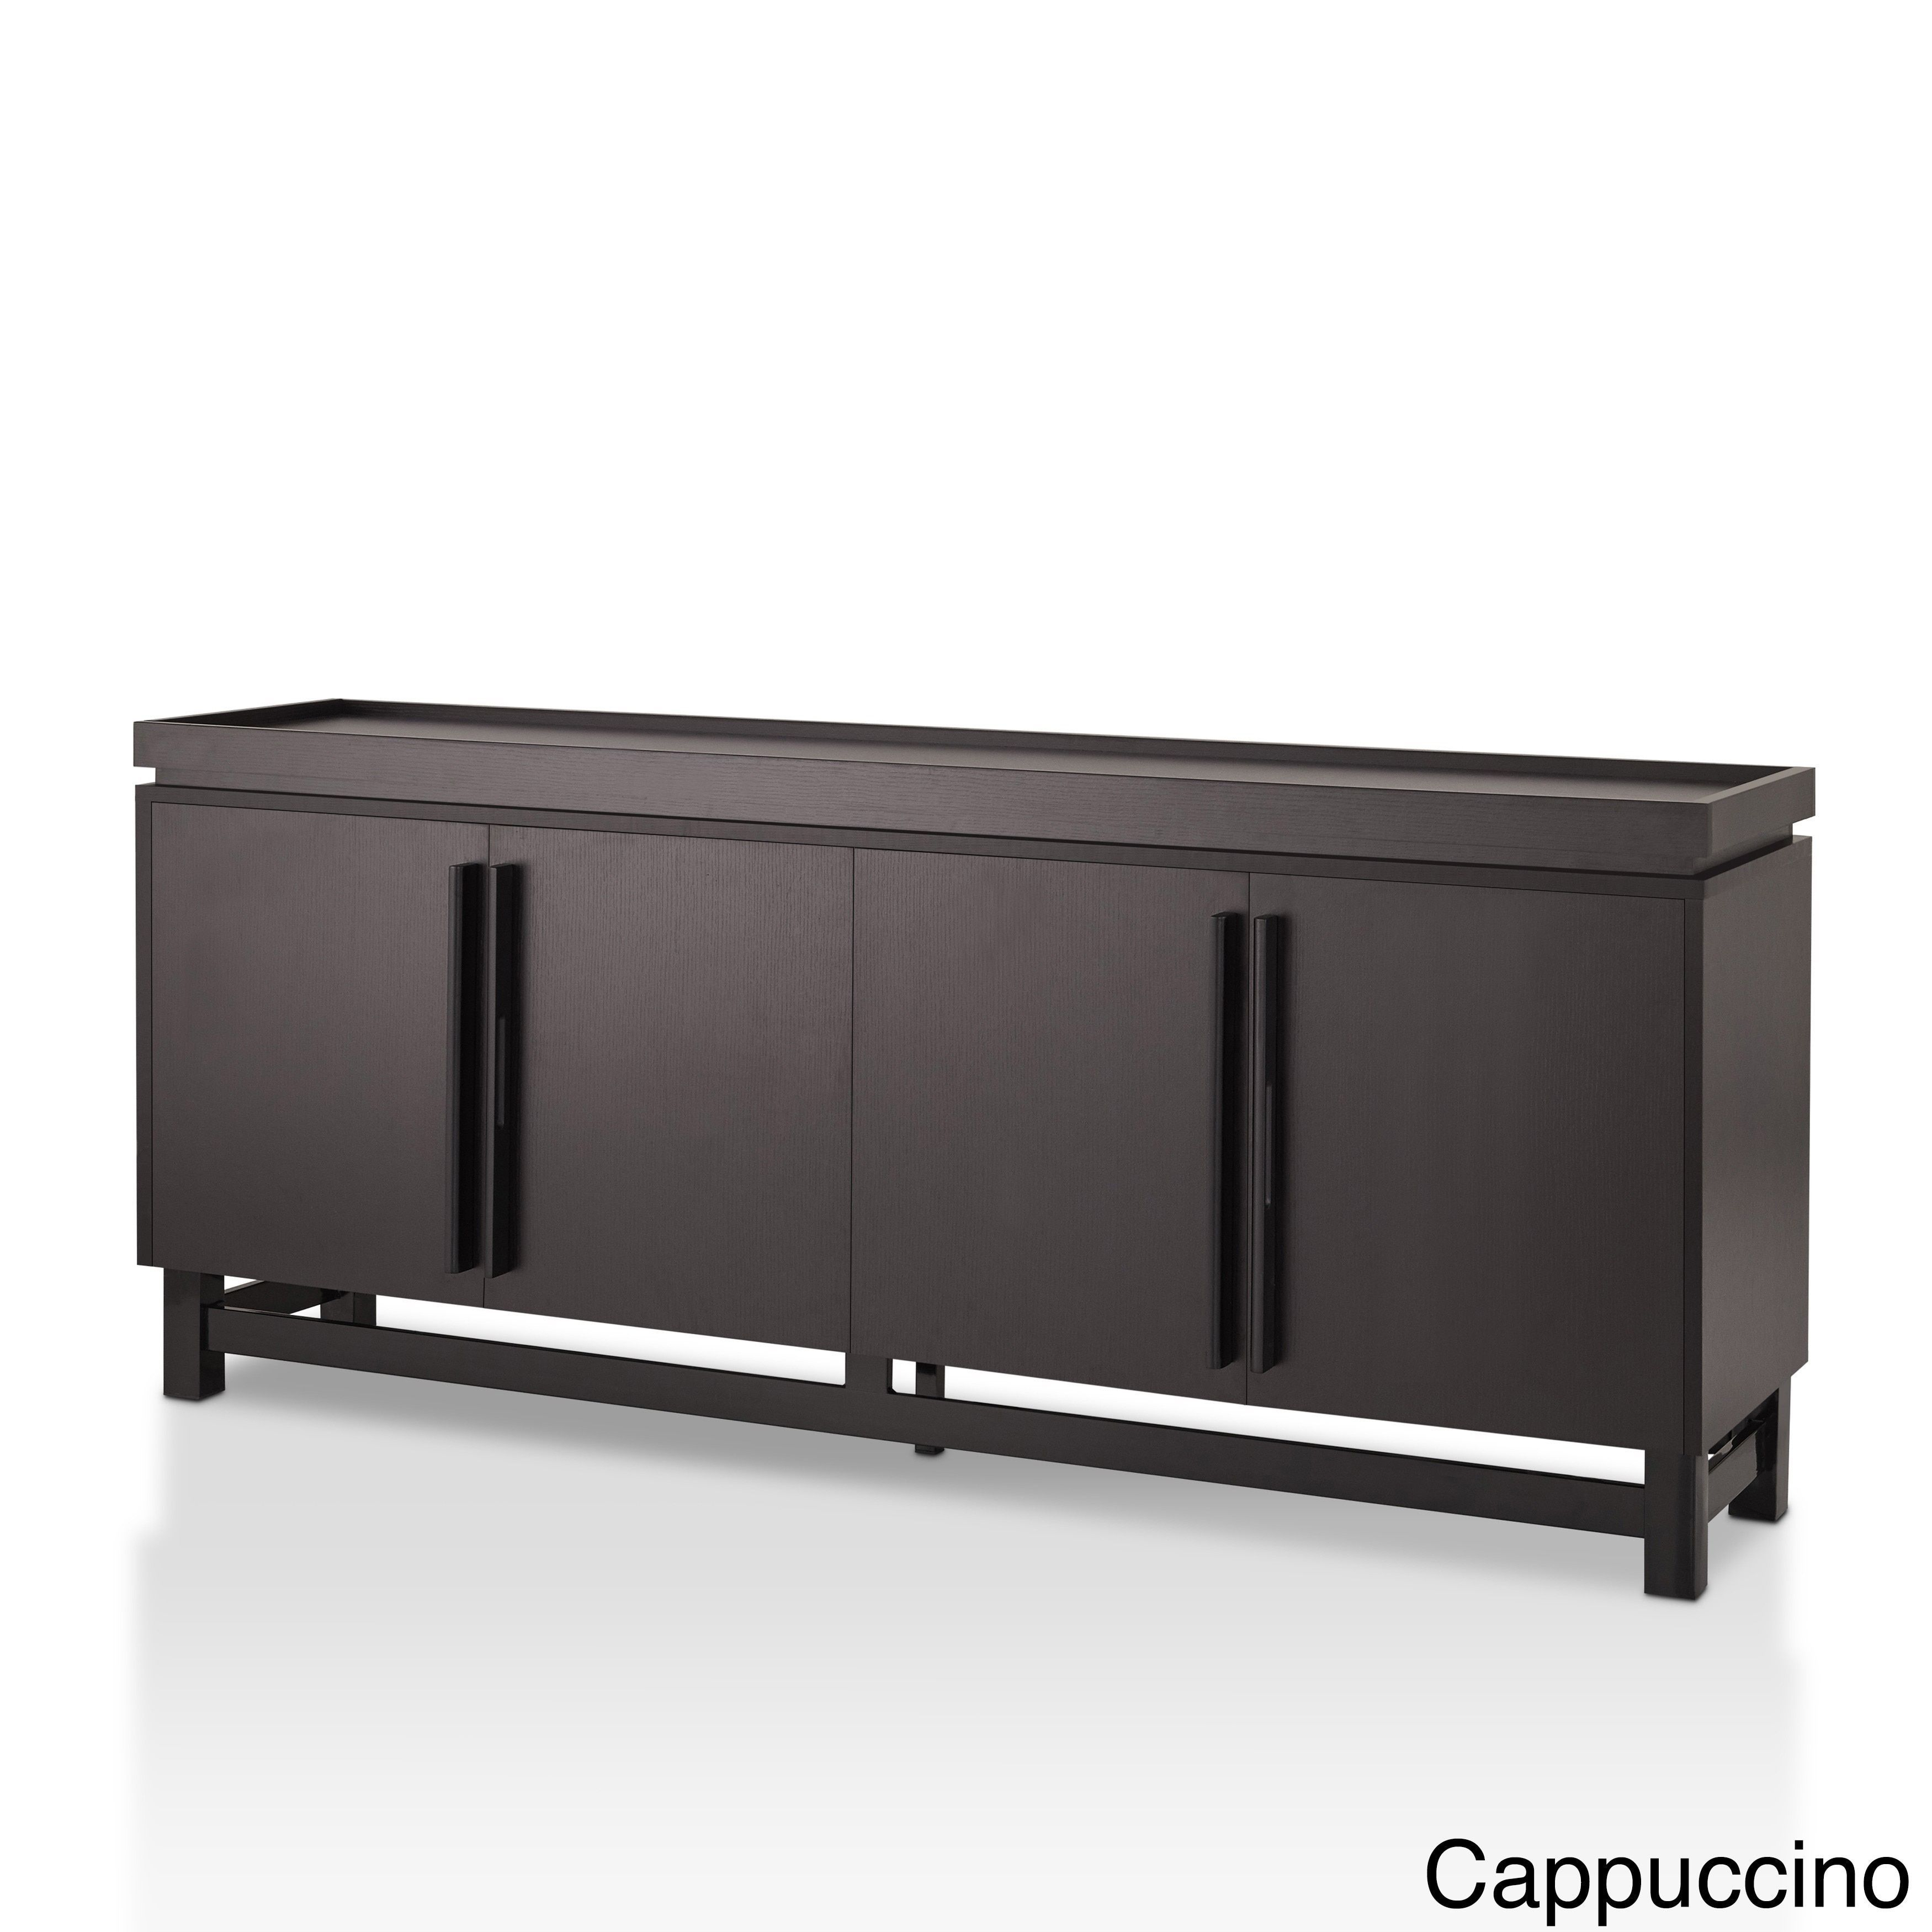 Furniture Of America Sonova Modern 70 Inch Buffet Cabinet With Regard To Contemporary Cappuccino Dining Buffets (View 18 of 30)